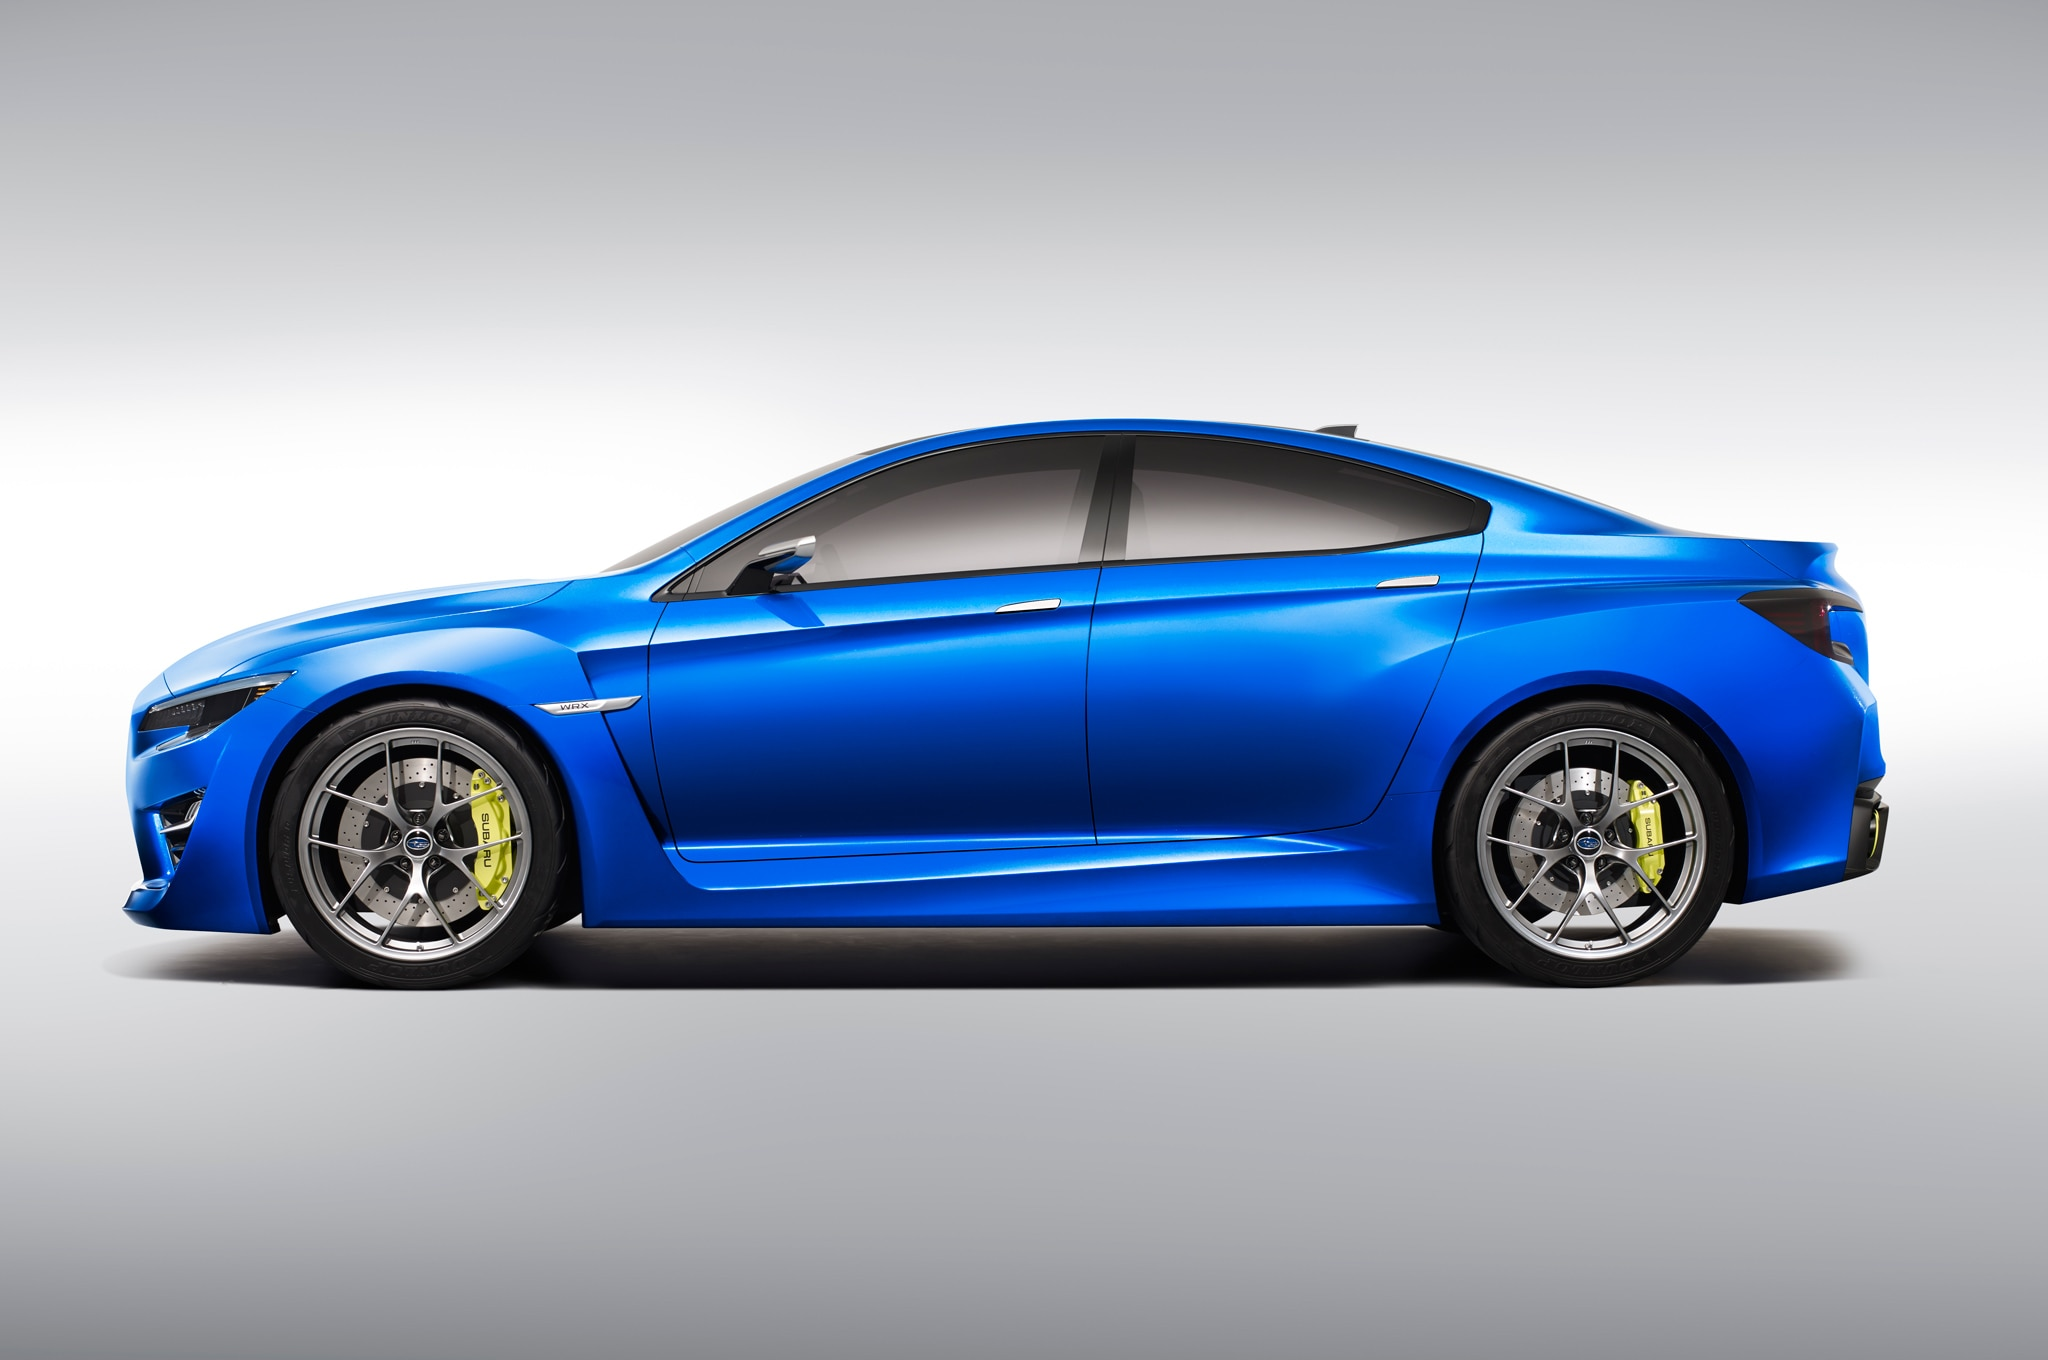 In other words the next wrx